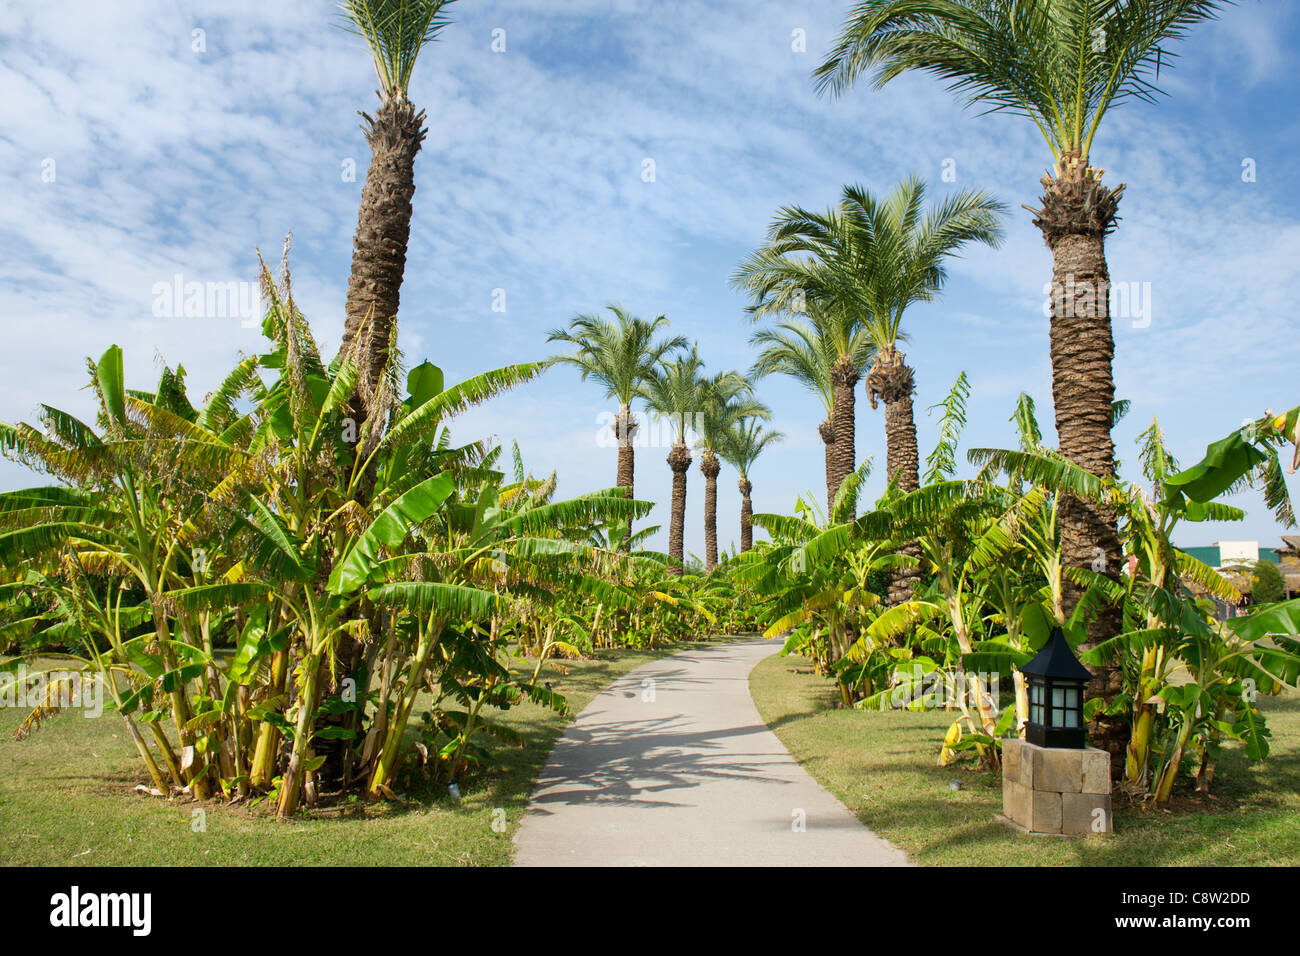 Tropical garden with palm trees and banana trees Stock Photo